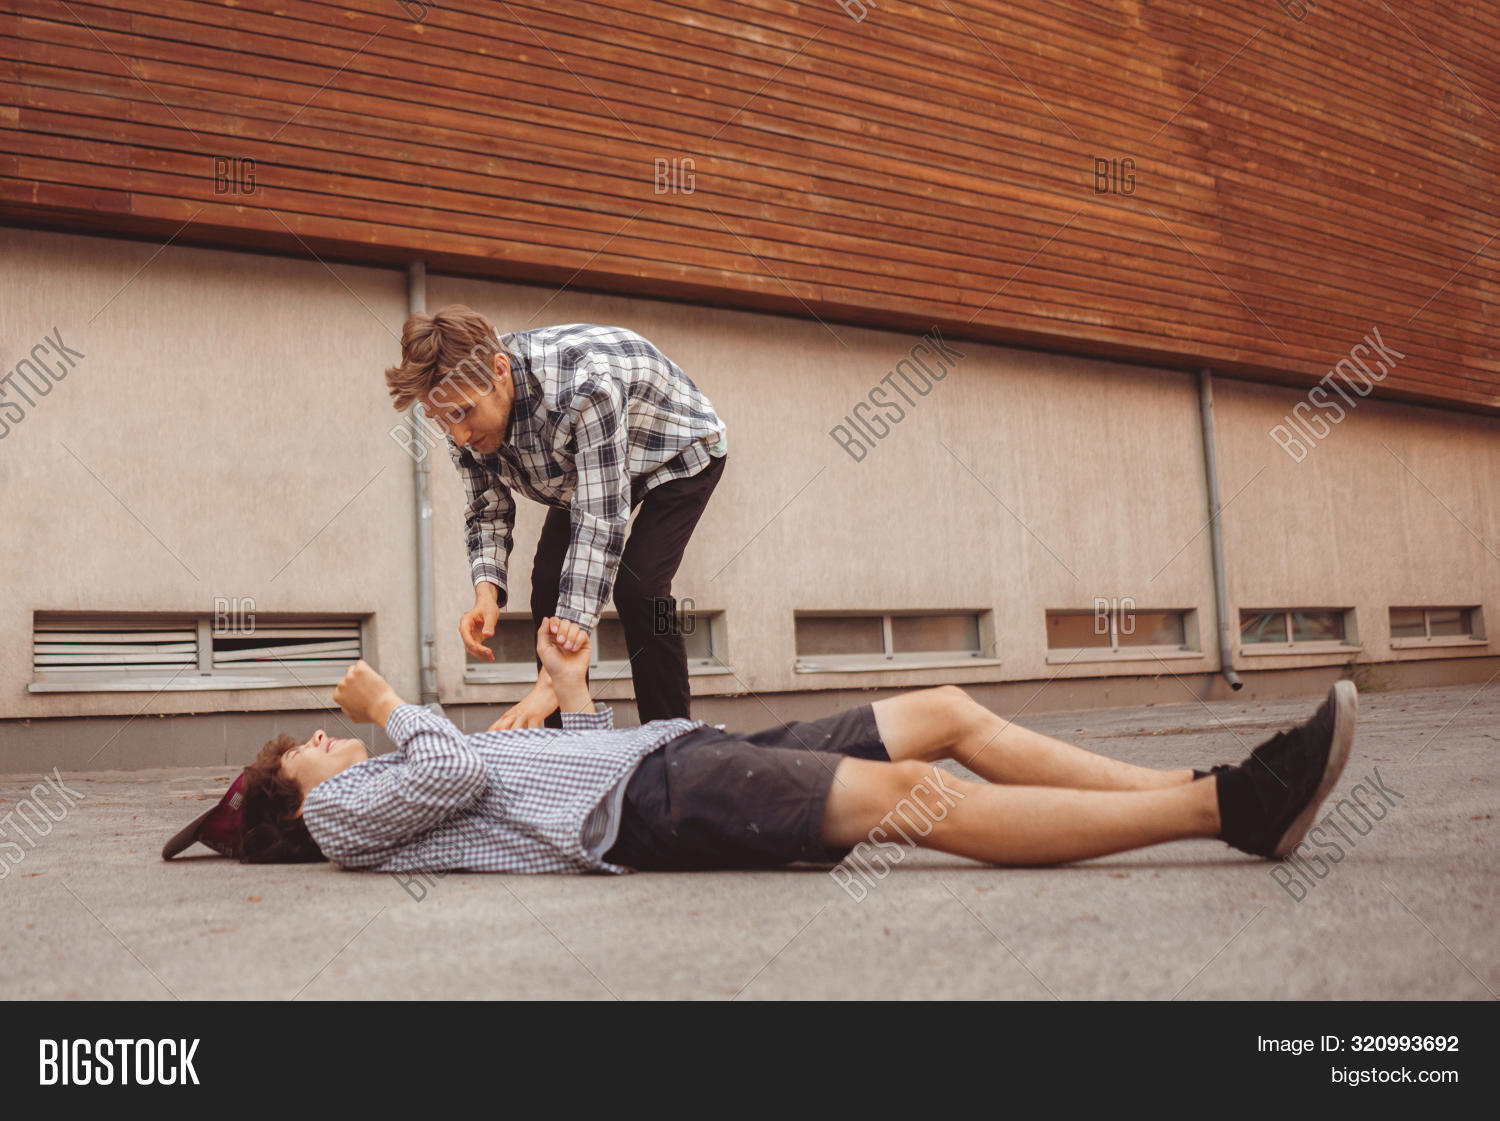 Injury Accident, A Guy Lay On The Ground Outdoor, Another Man Come And Help In The City S